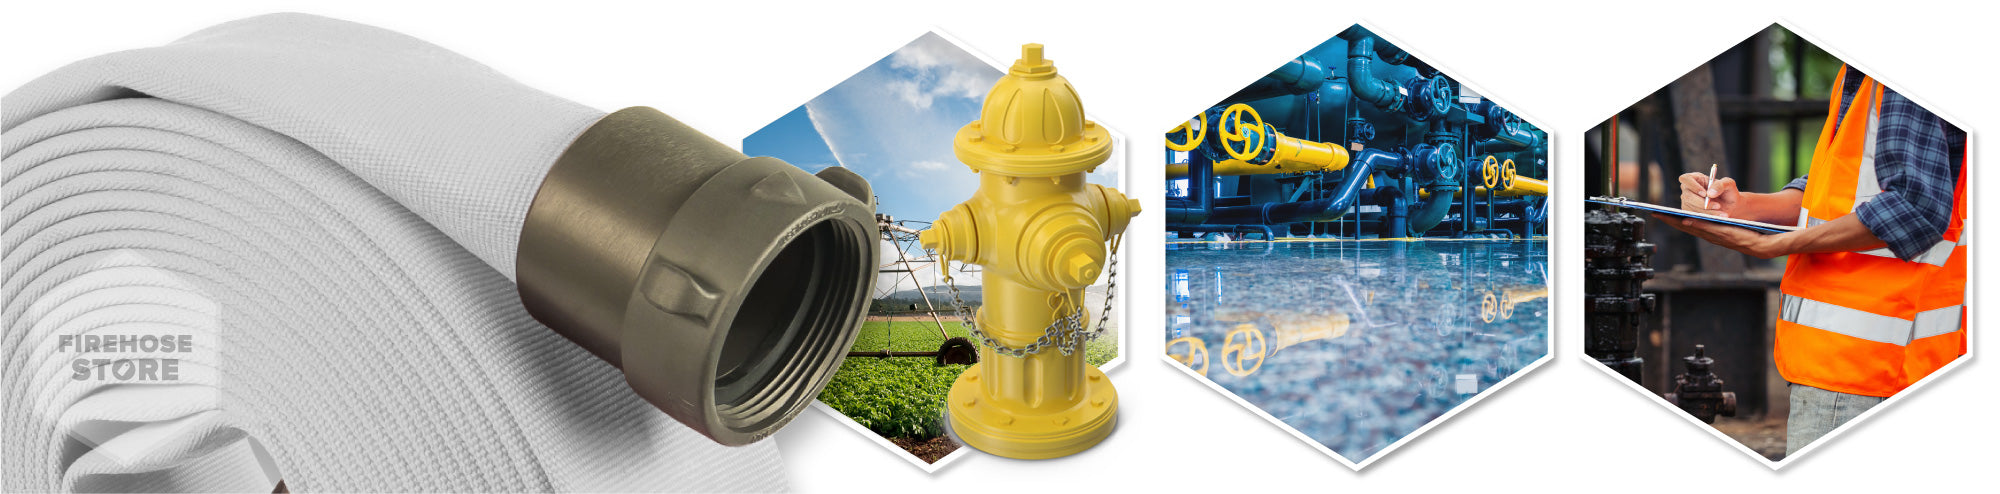 4 Inch x 25 Feet Fire Hydrant Hose Graphic Overview